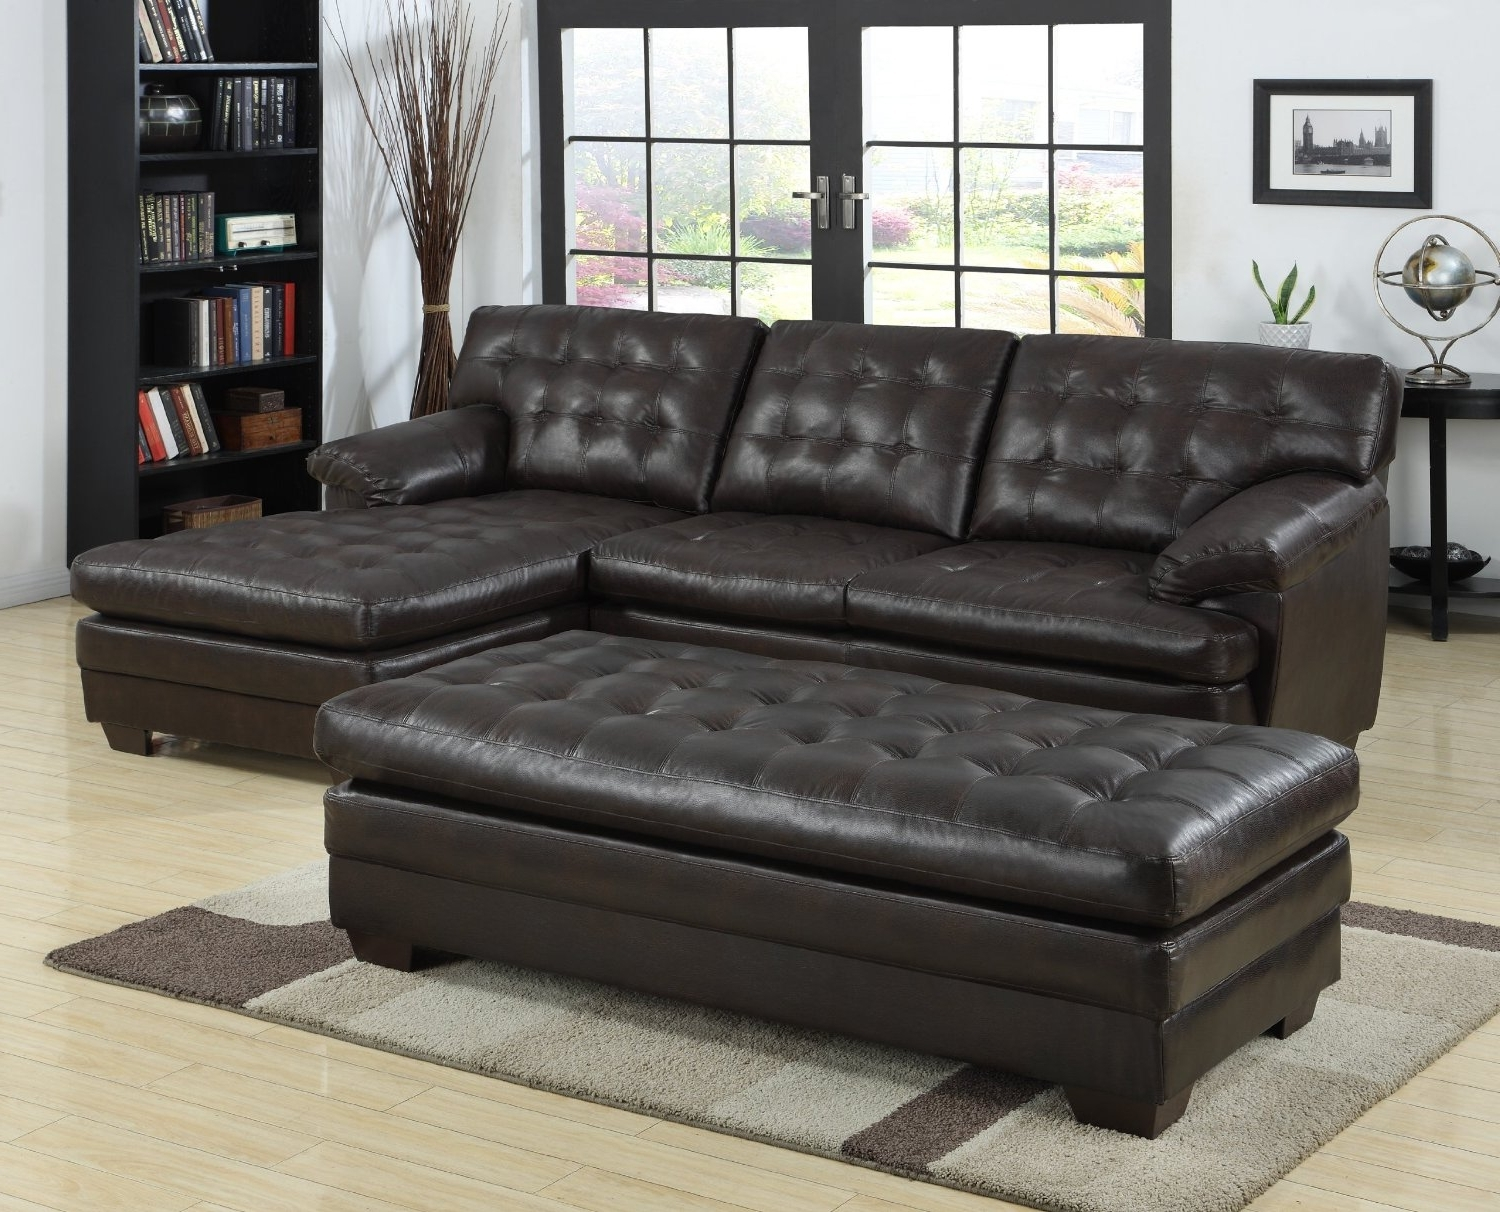 Well Liked Sofas With Chaise And Ottoman Throughout Black Tufted Leather Sectional Sofa With Chaise And Bench Seat (View 20 of 20)